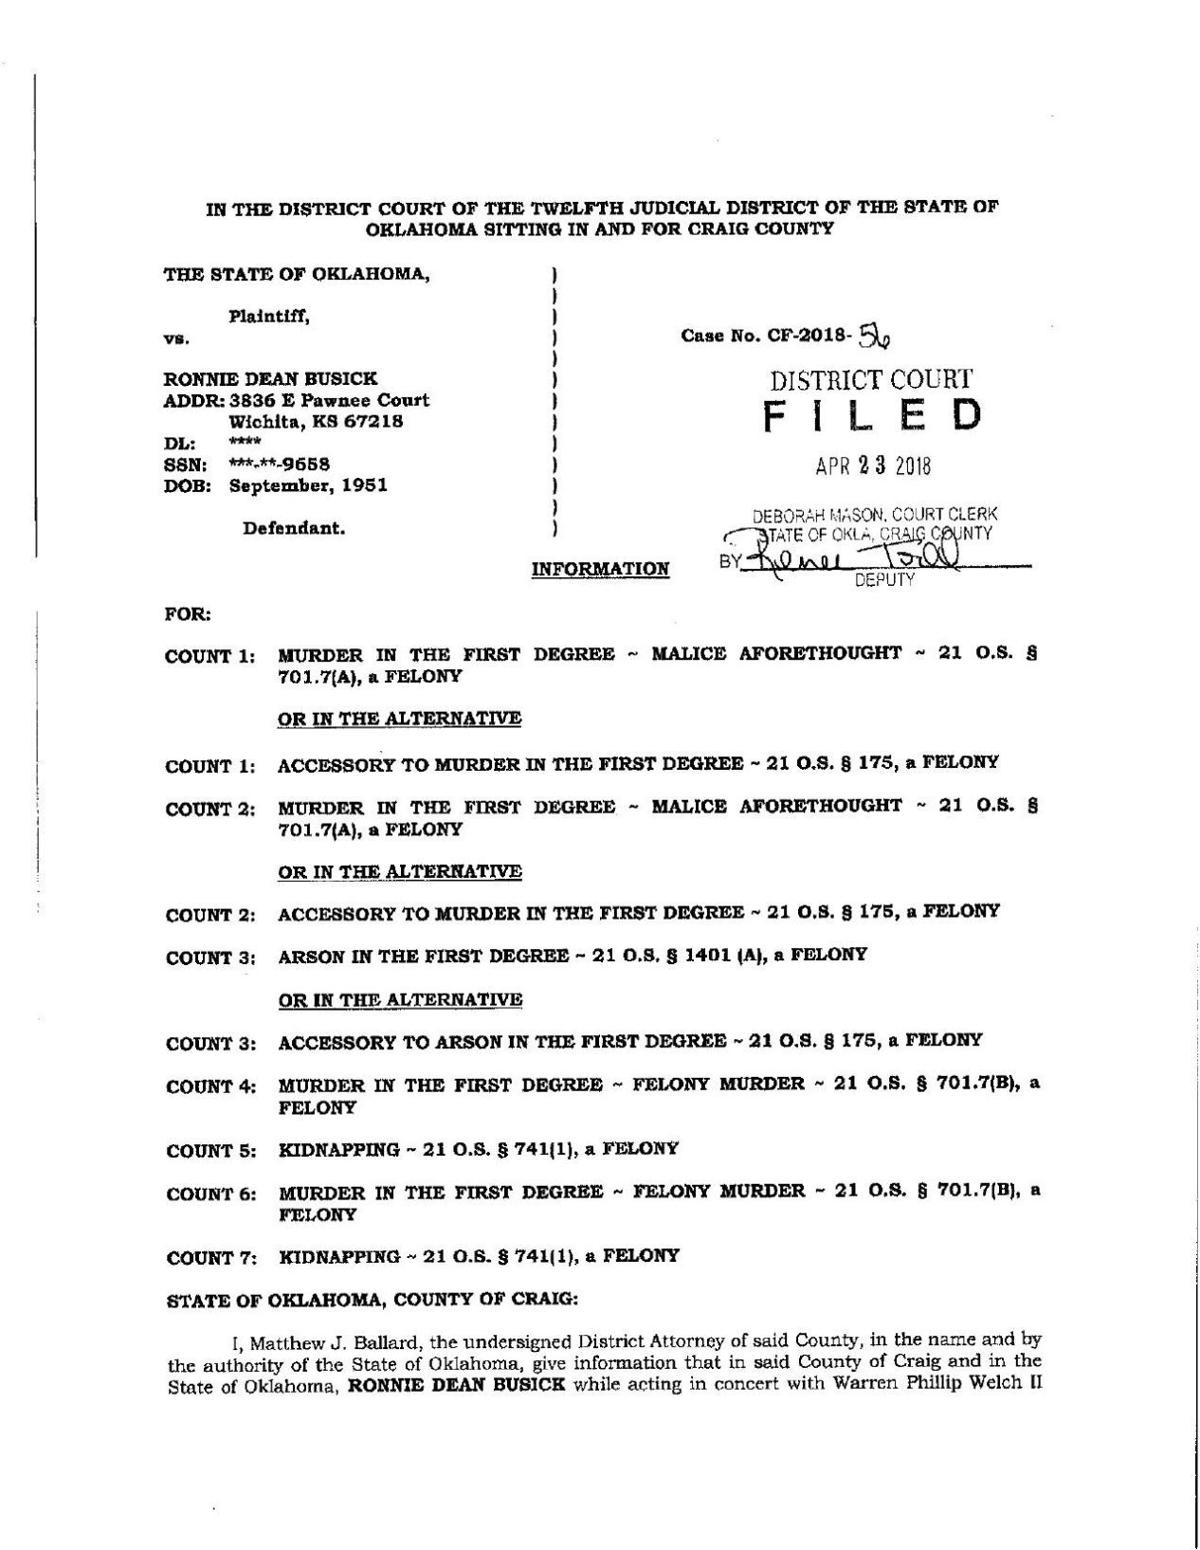 Charges and affidavit in Welch cast